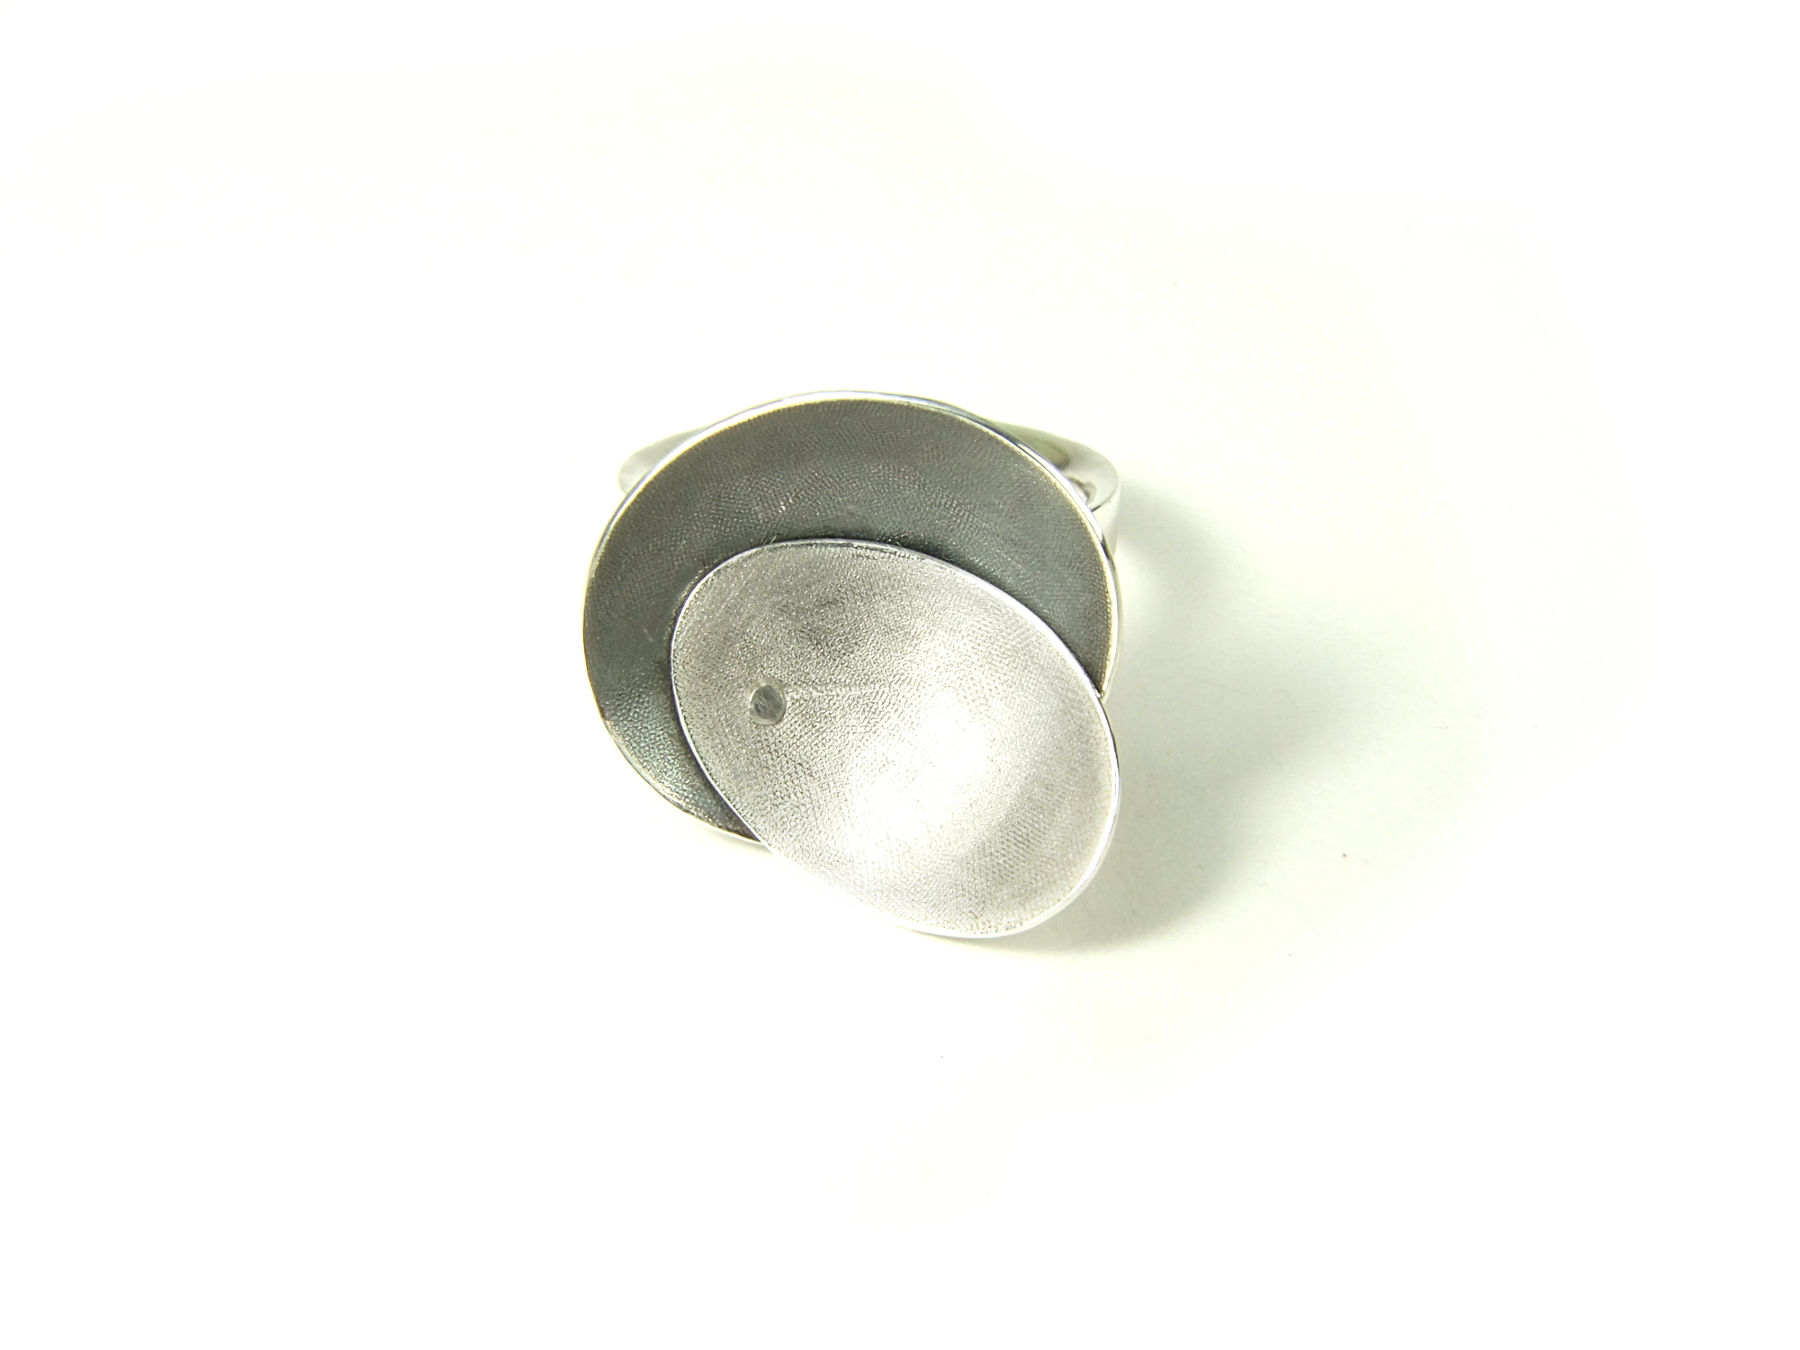 Front view Argentium silver ring with two textured and domed oval top pieces, riveted together & partially oxidised. HBM084A